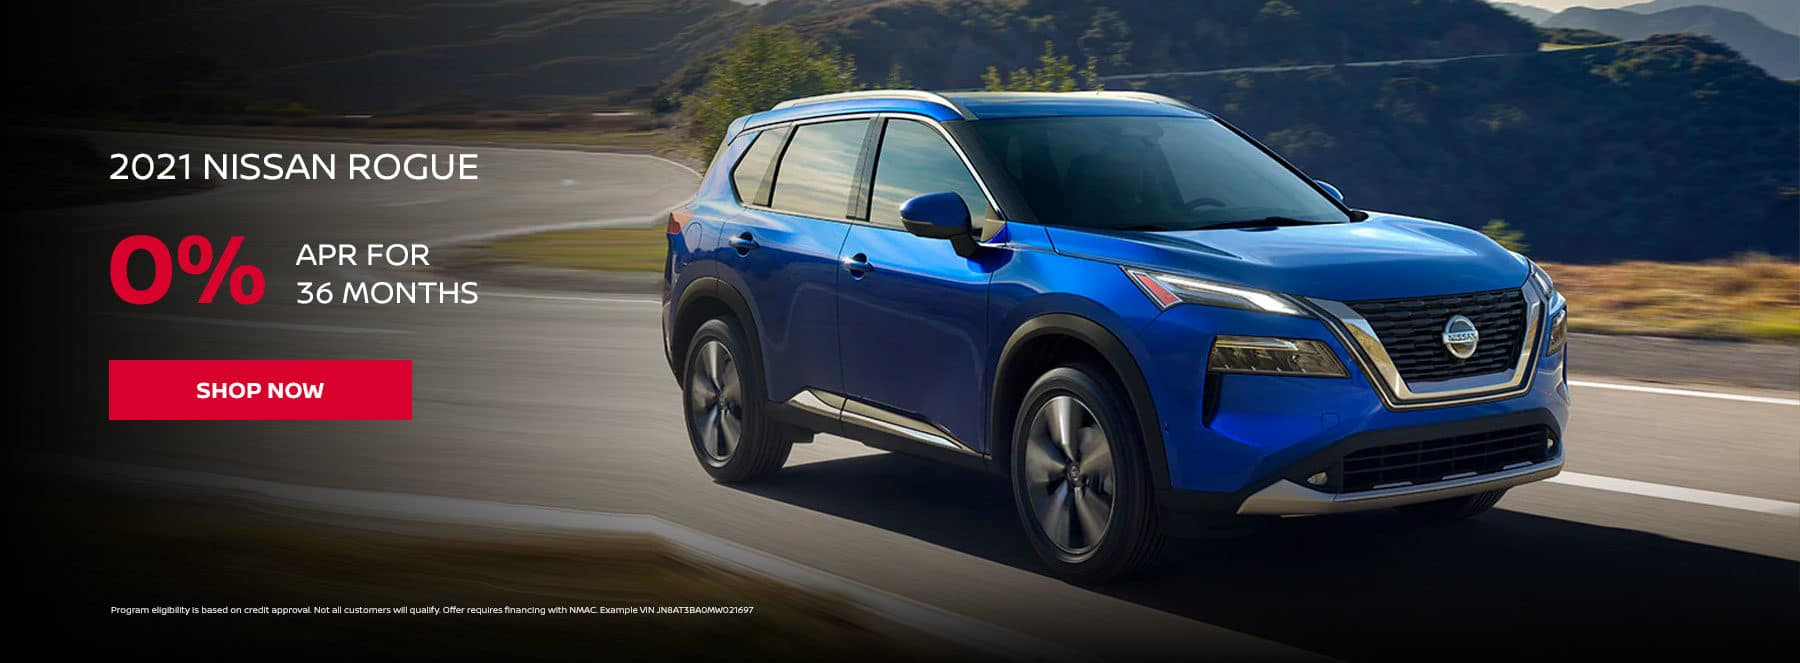 2021 NISSAN ROGUE 0% APR for 36 months